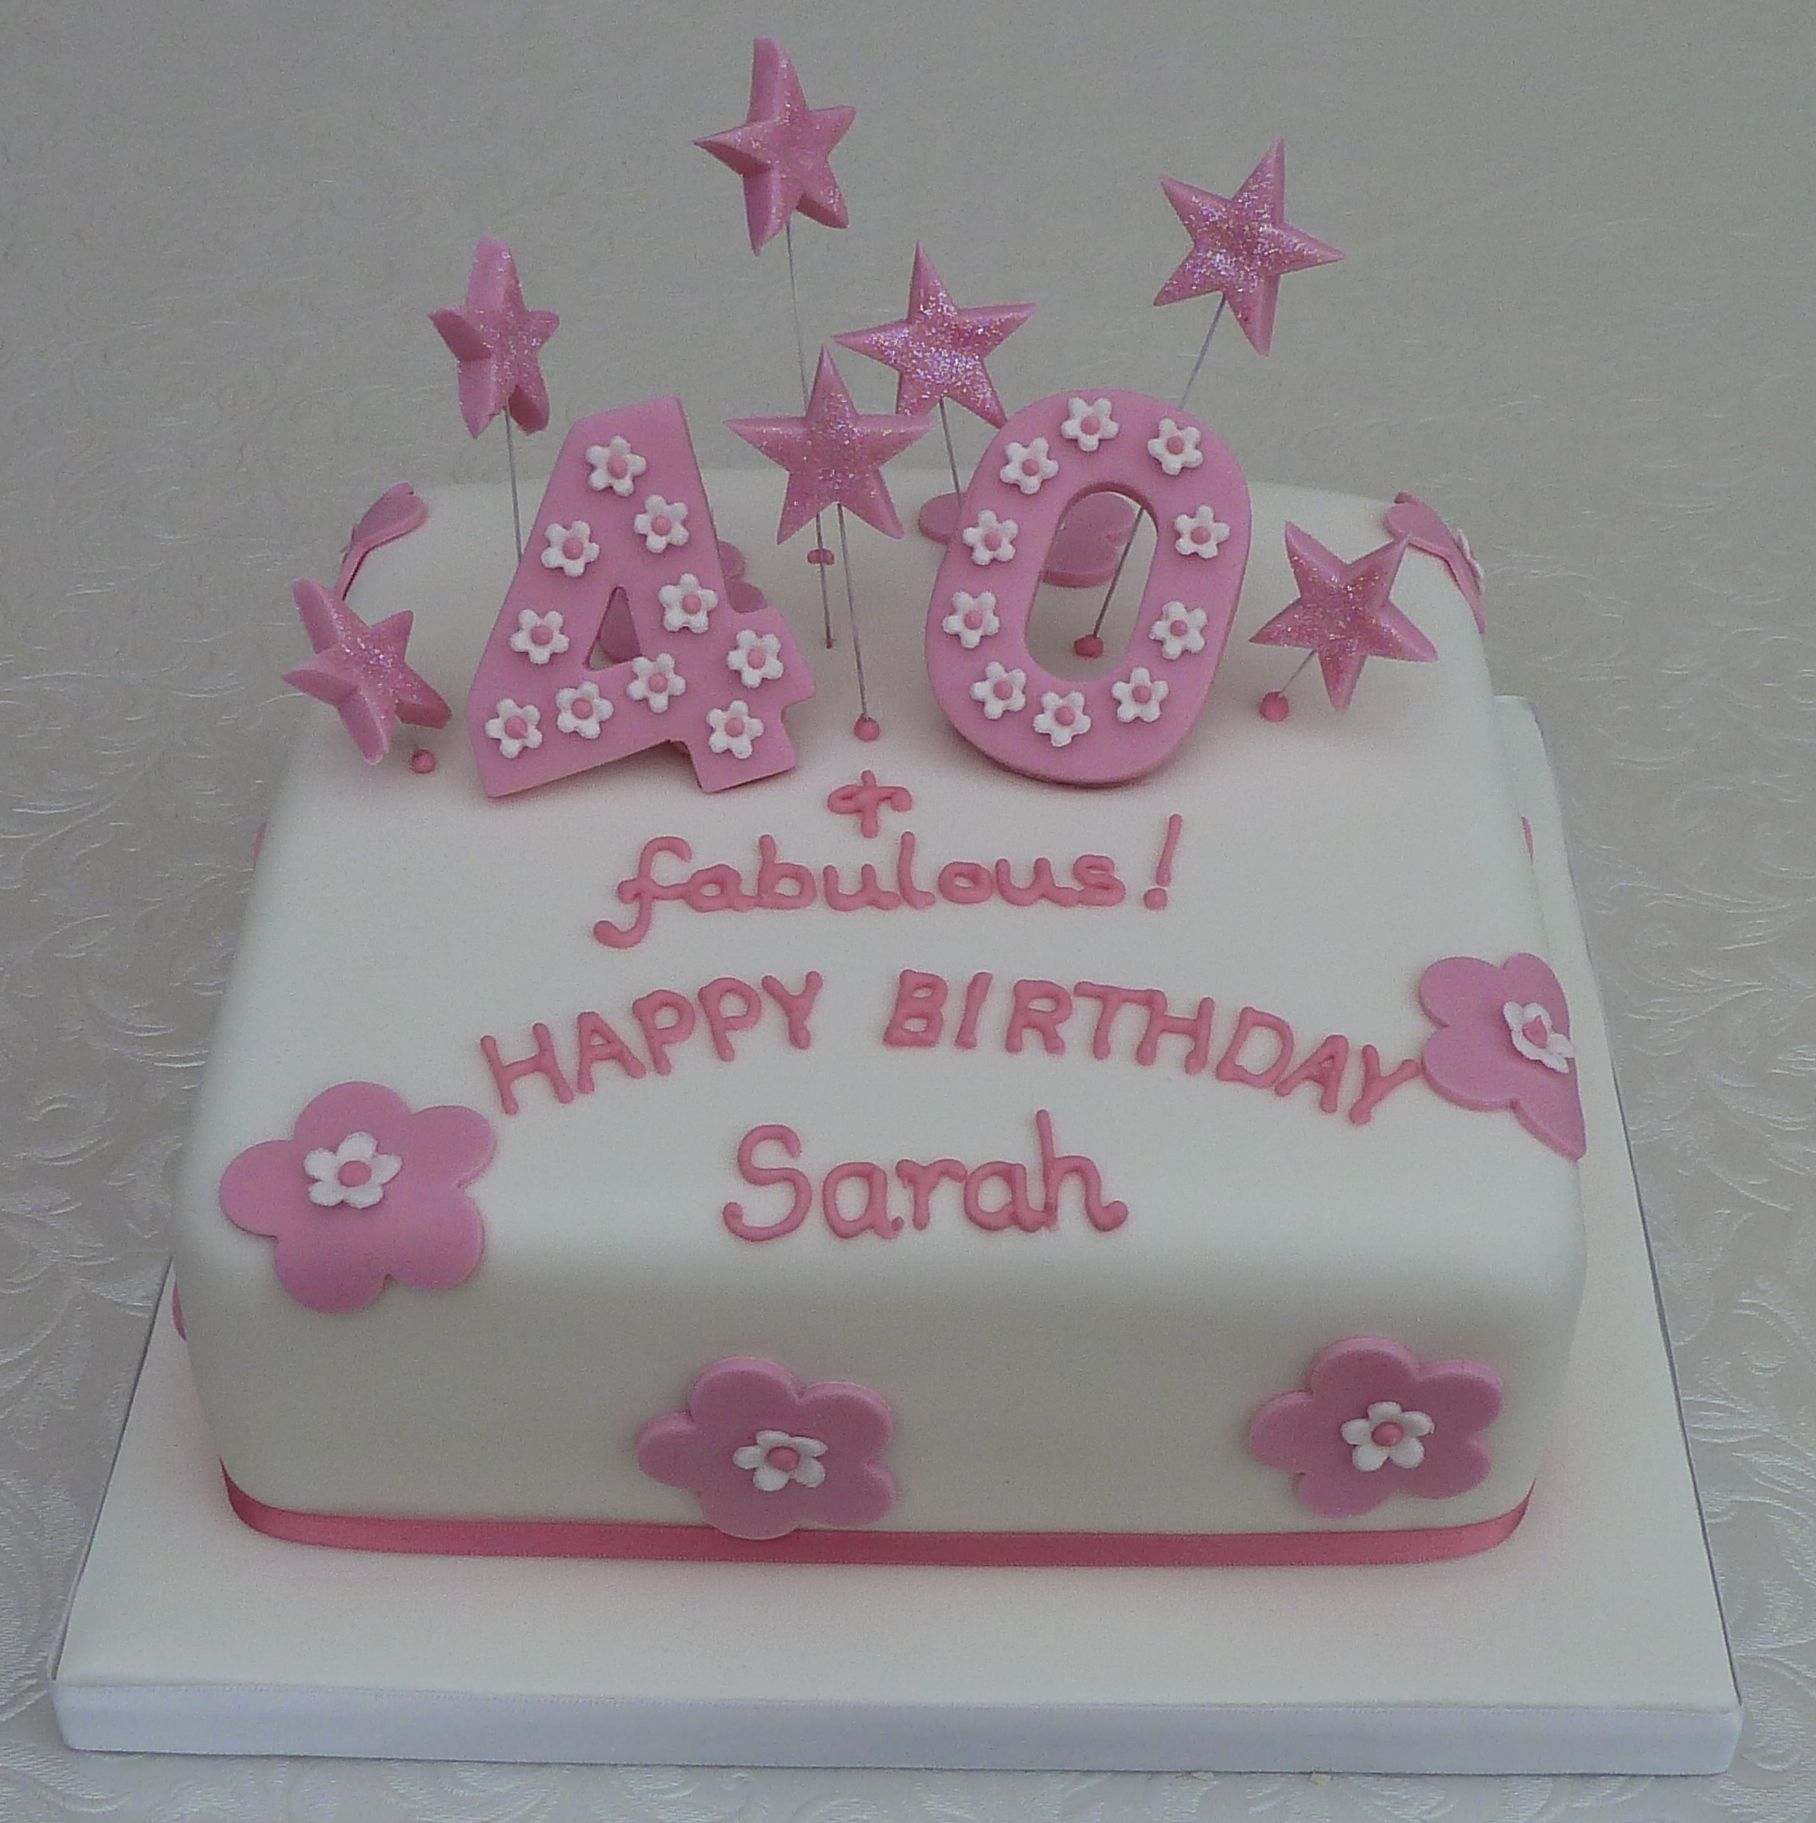 Girly Pink 40th Birthday Cake from wwwcakesbykitcouk Cakes by